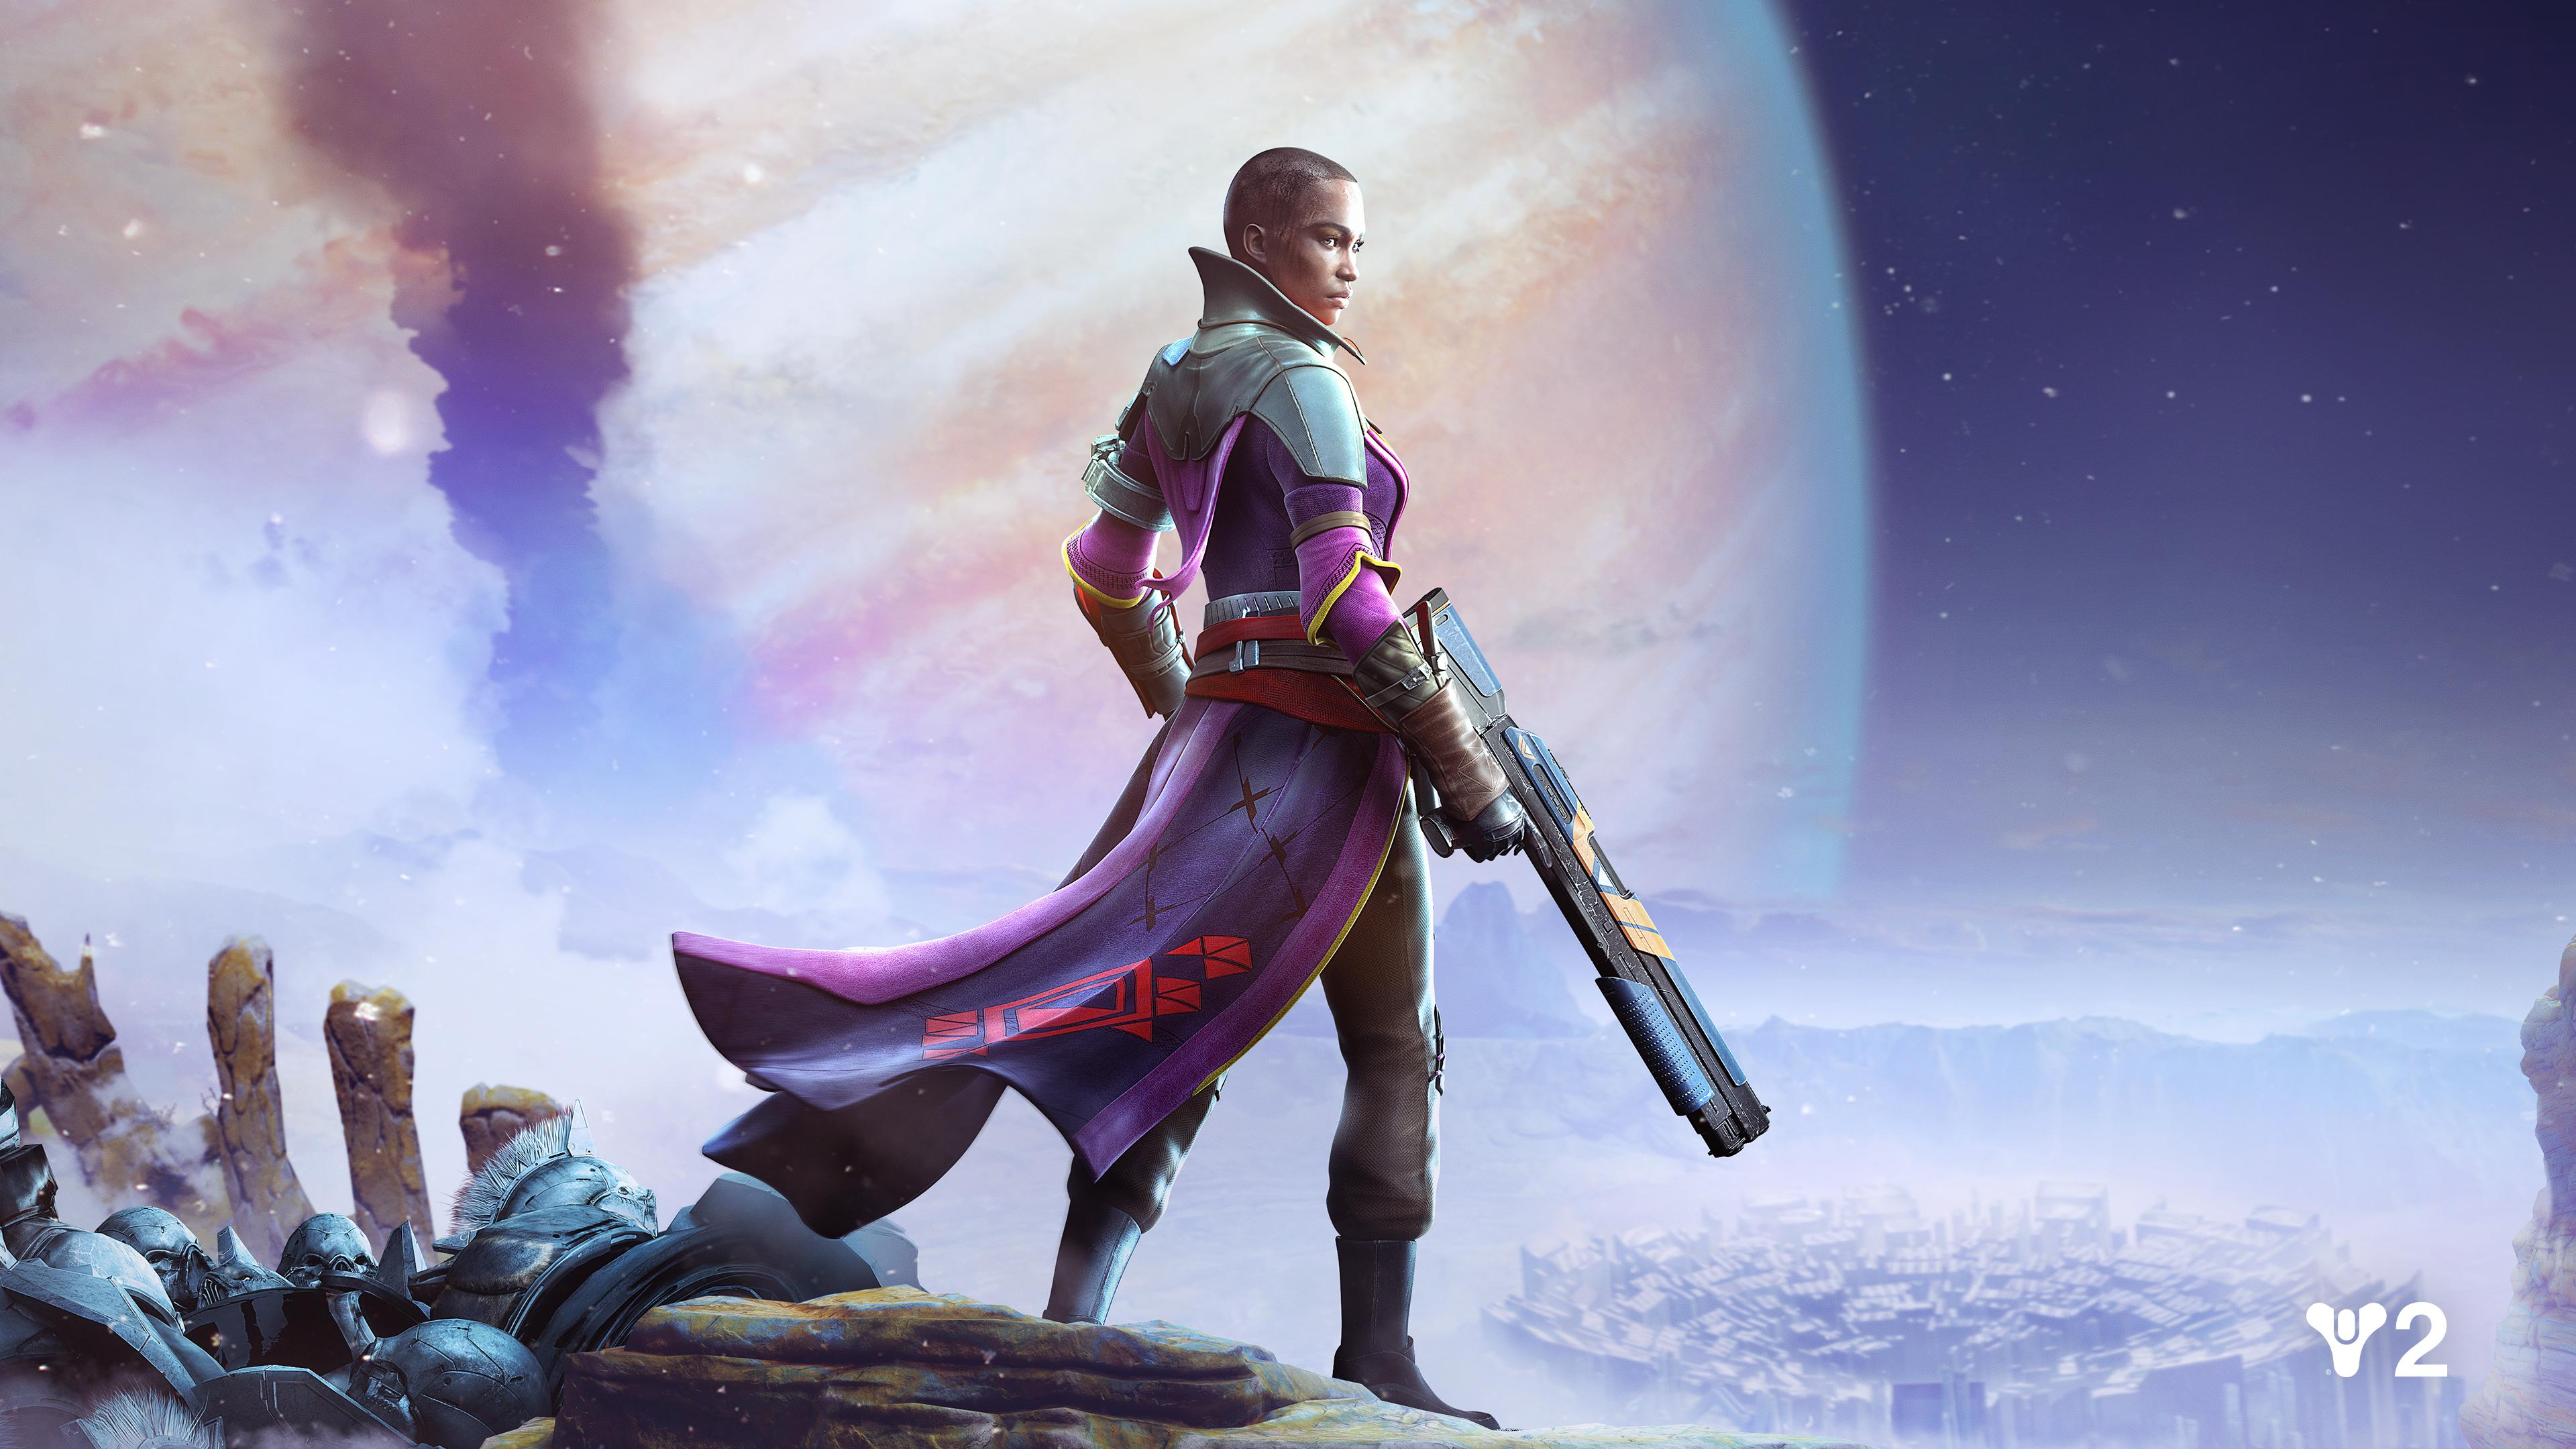 Destiny 2 Ikora Rey Hd Games 4k Wallpapers Images Backgrounds Photos And Pictures